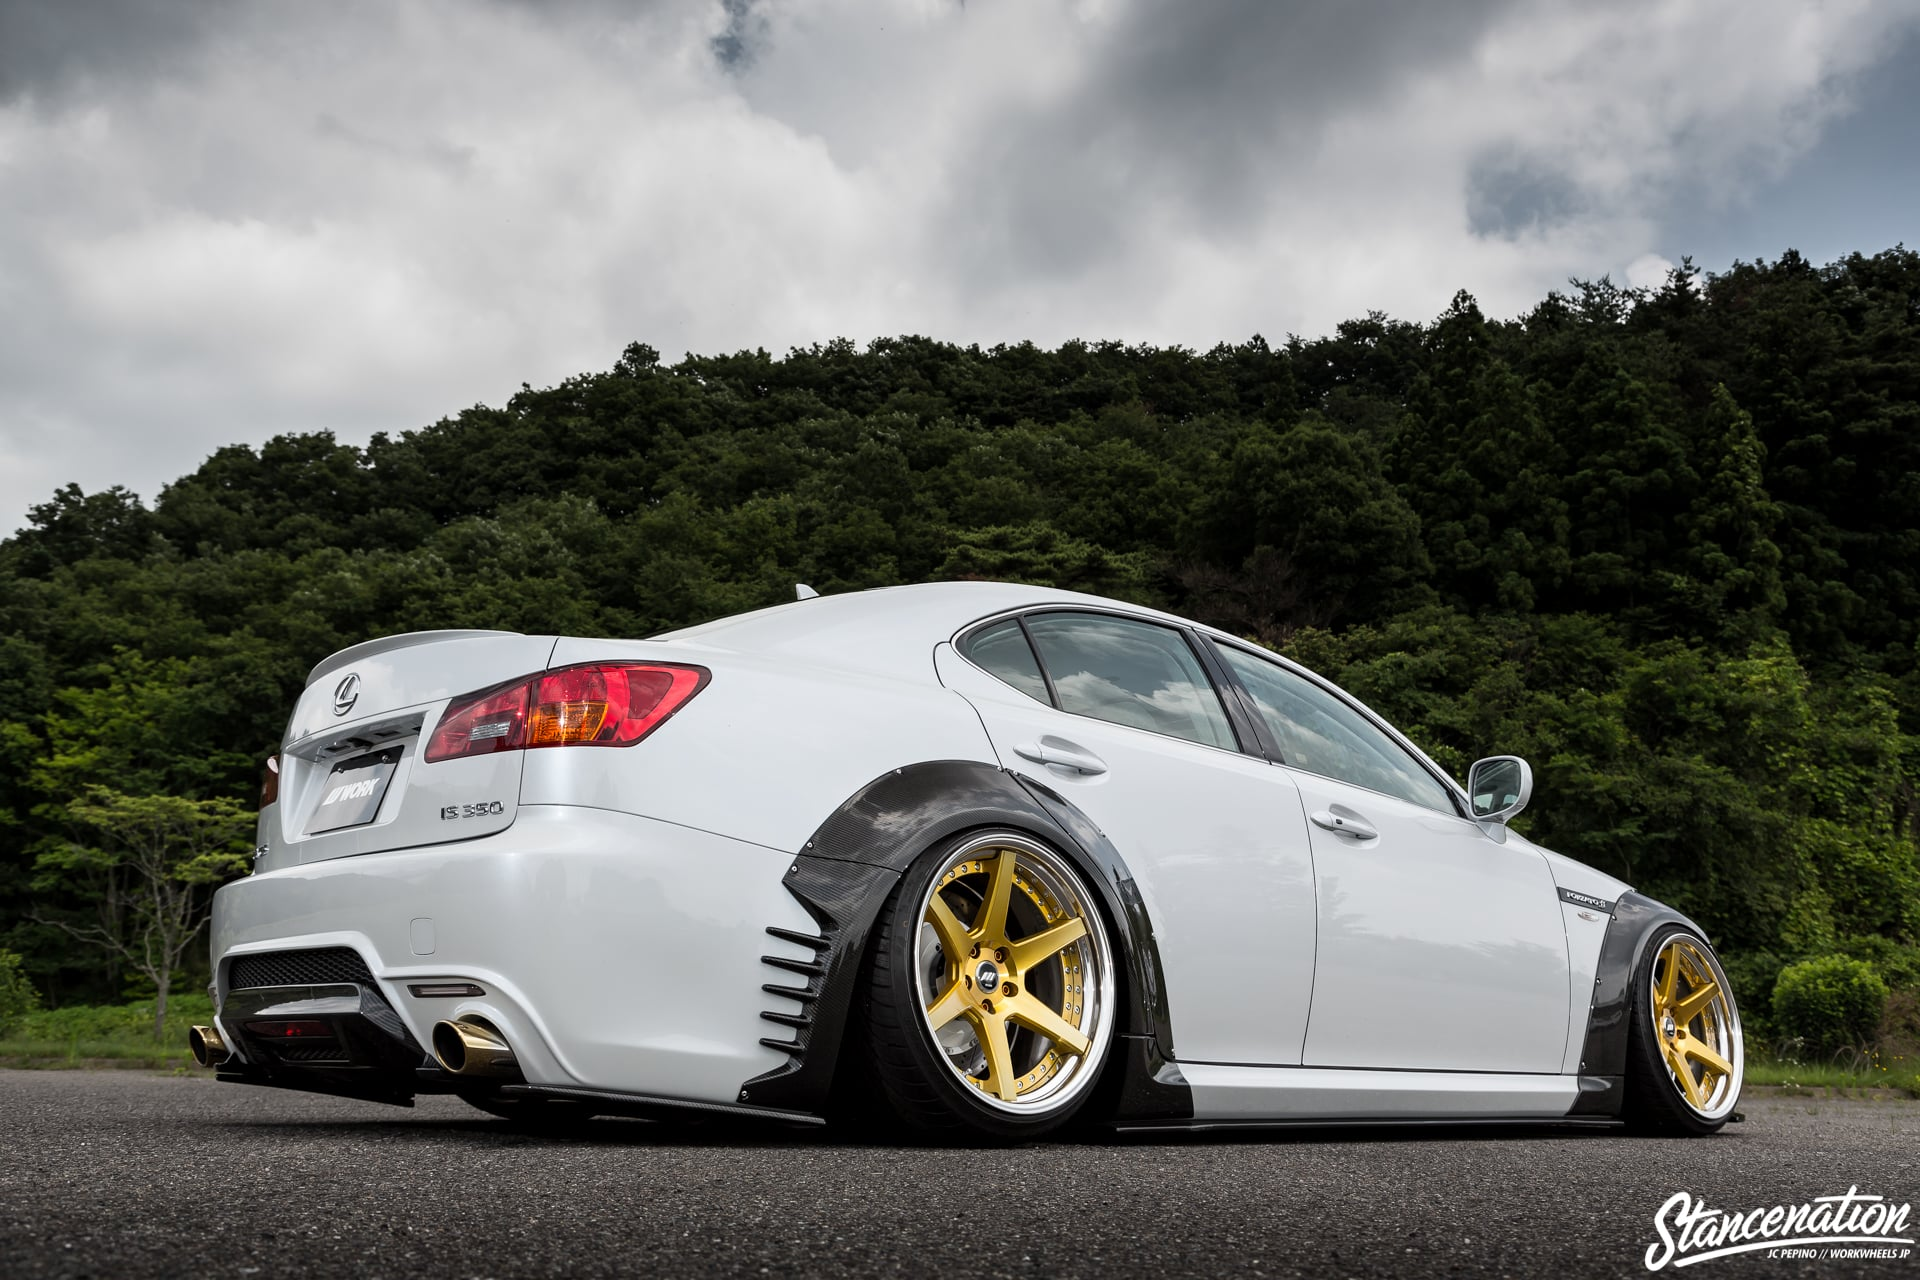 Forzato Lexus IS350 Stancenation